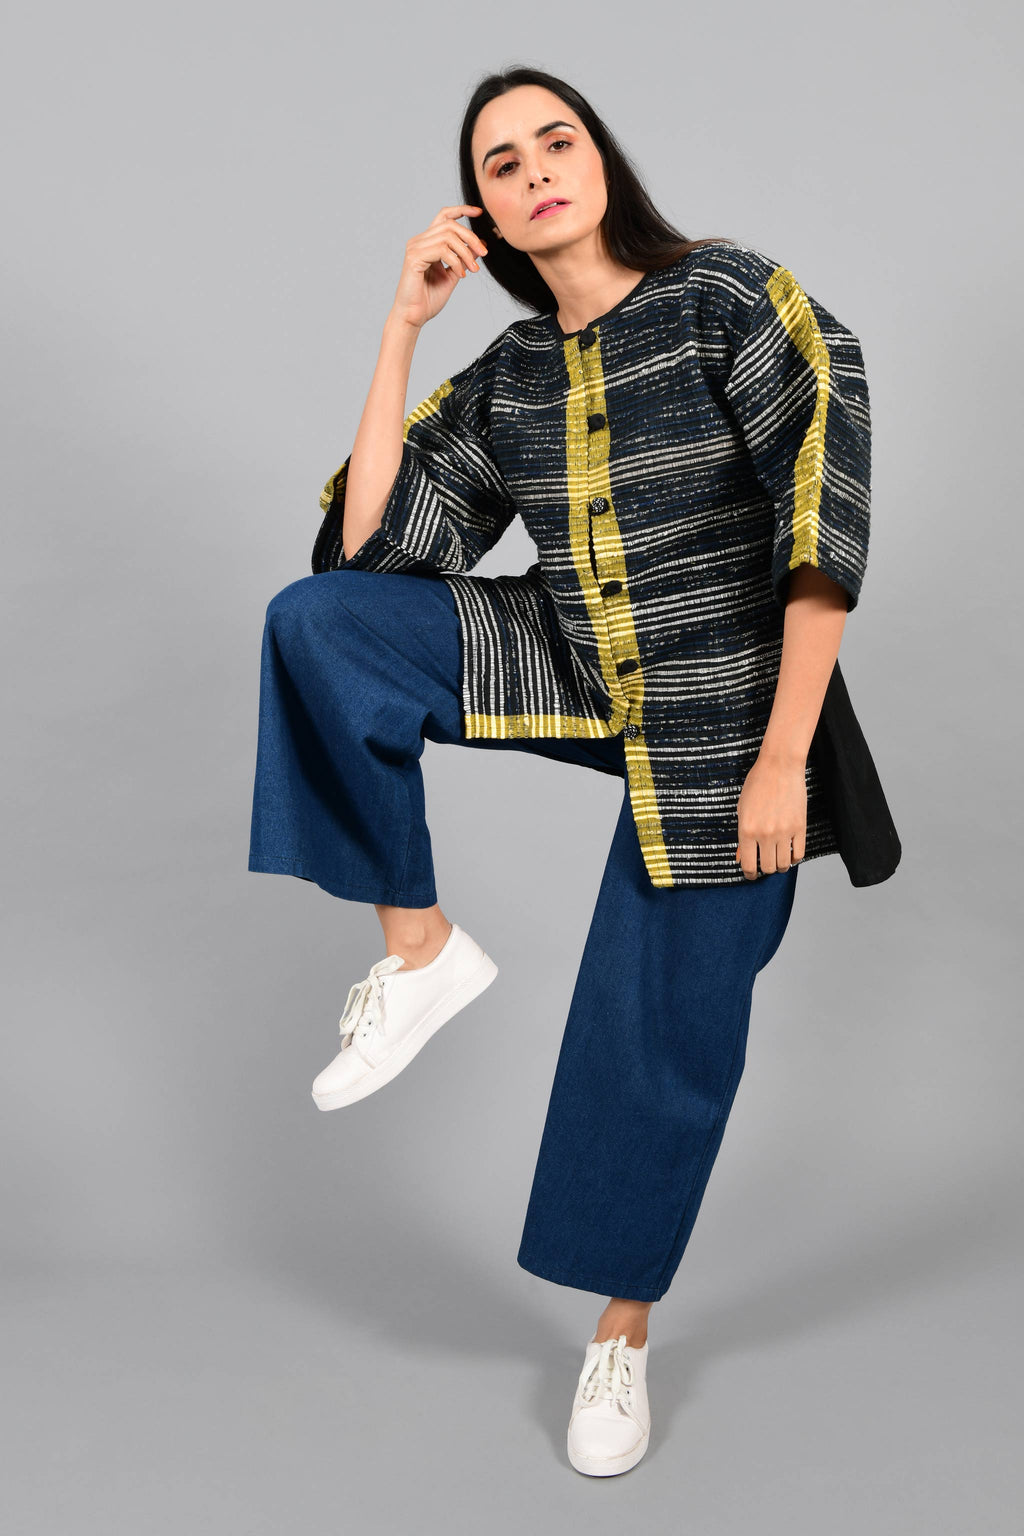 Front stylised pose of an Indian Womenswear female model wearing black upcycled kimono inspired jacket with a yellow stripe made with handspun and handwoven cotton by Cotton Rack.